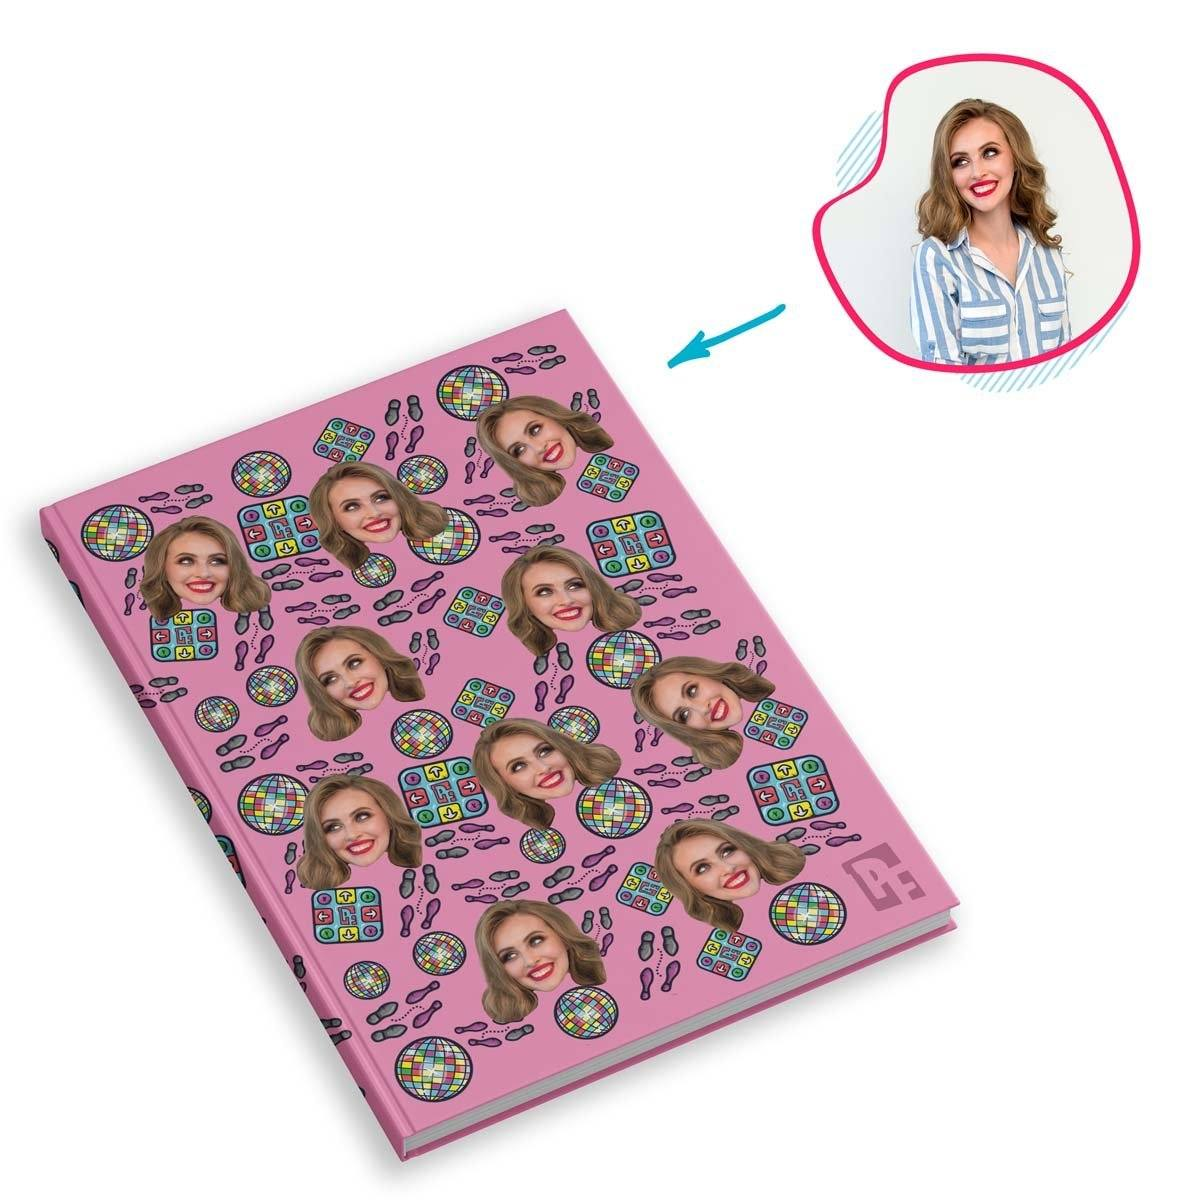 pink Dancing Notebook personalized with photo of face printed on them